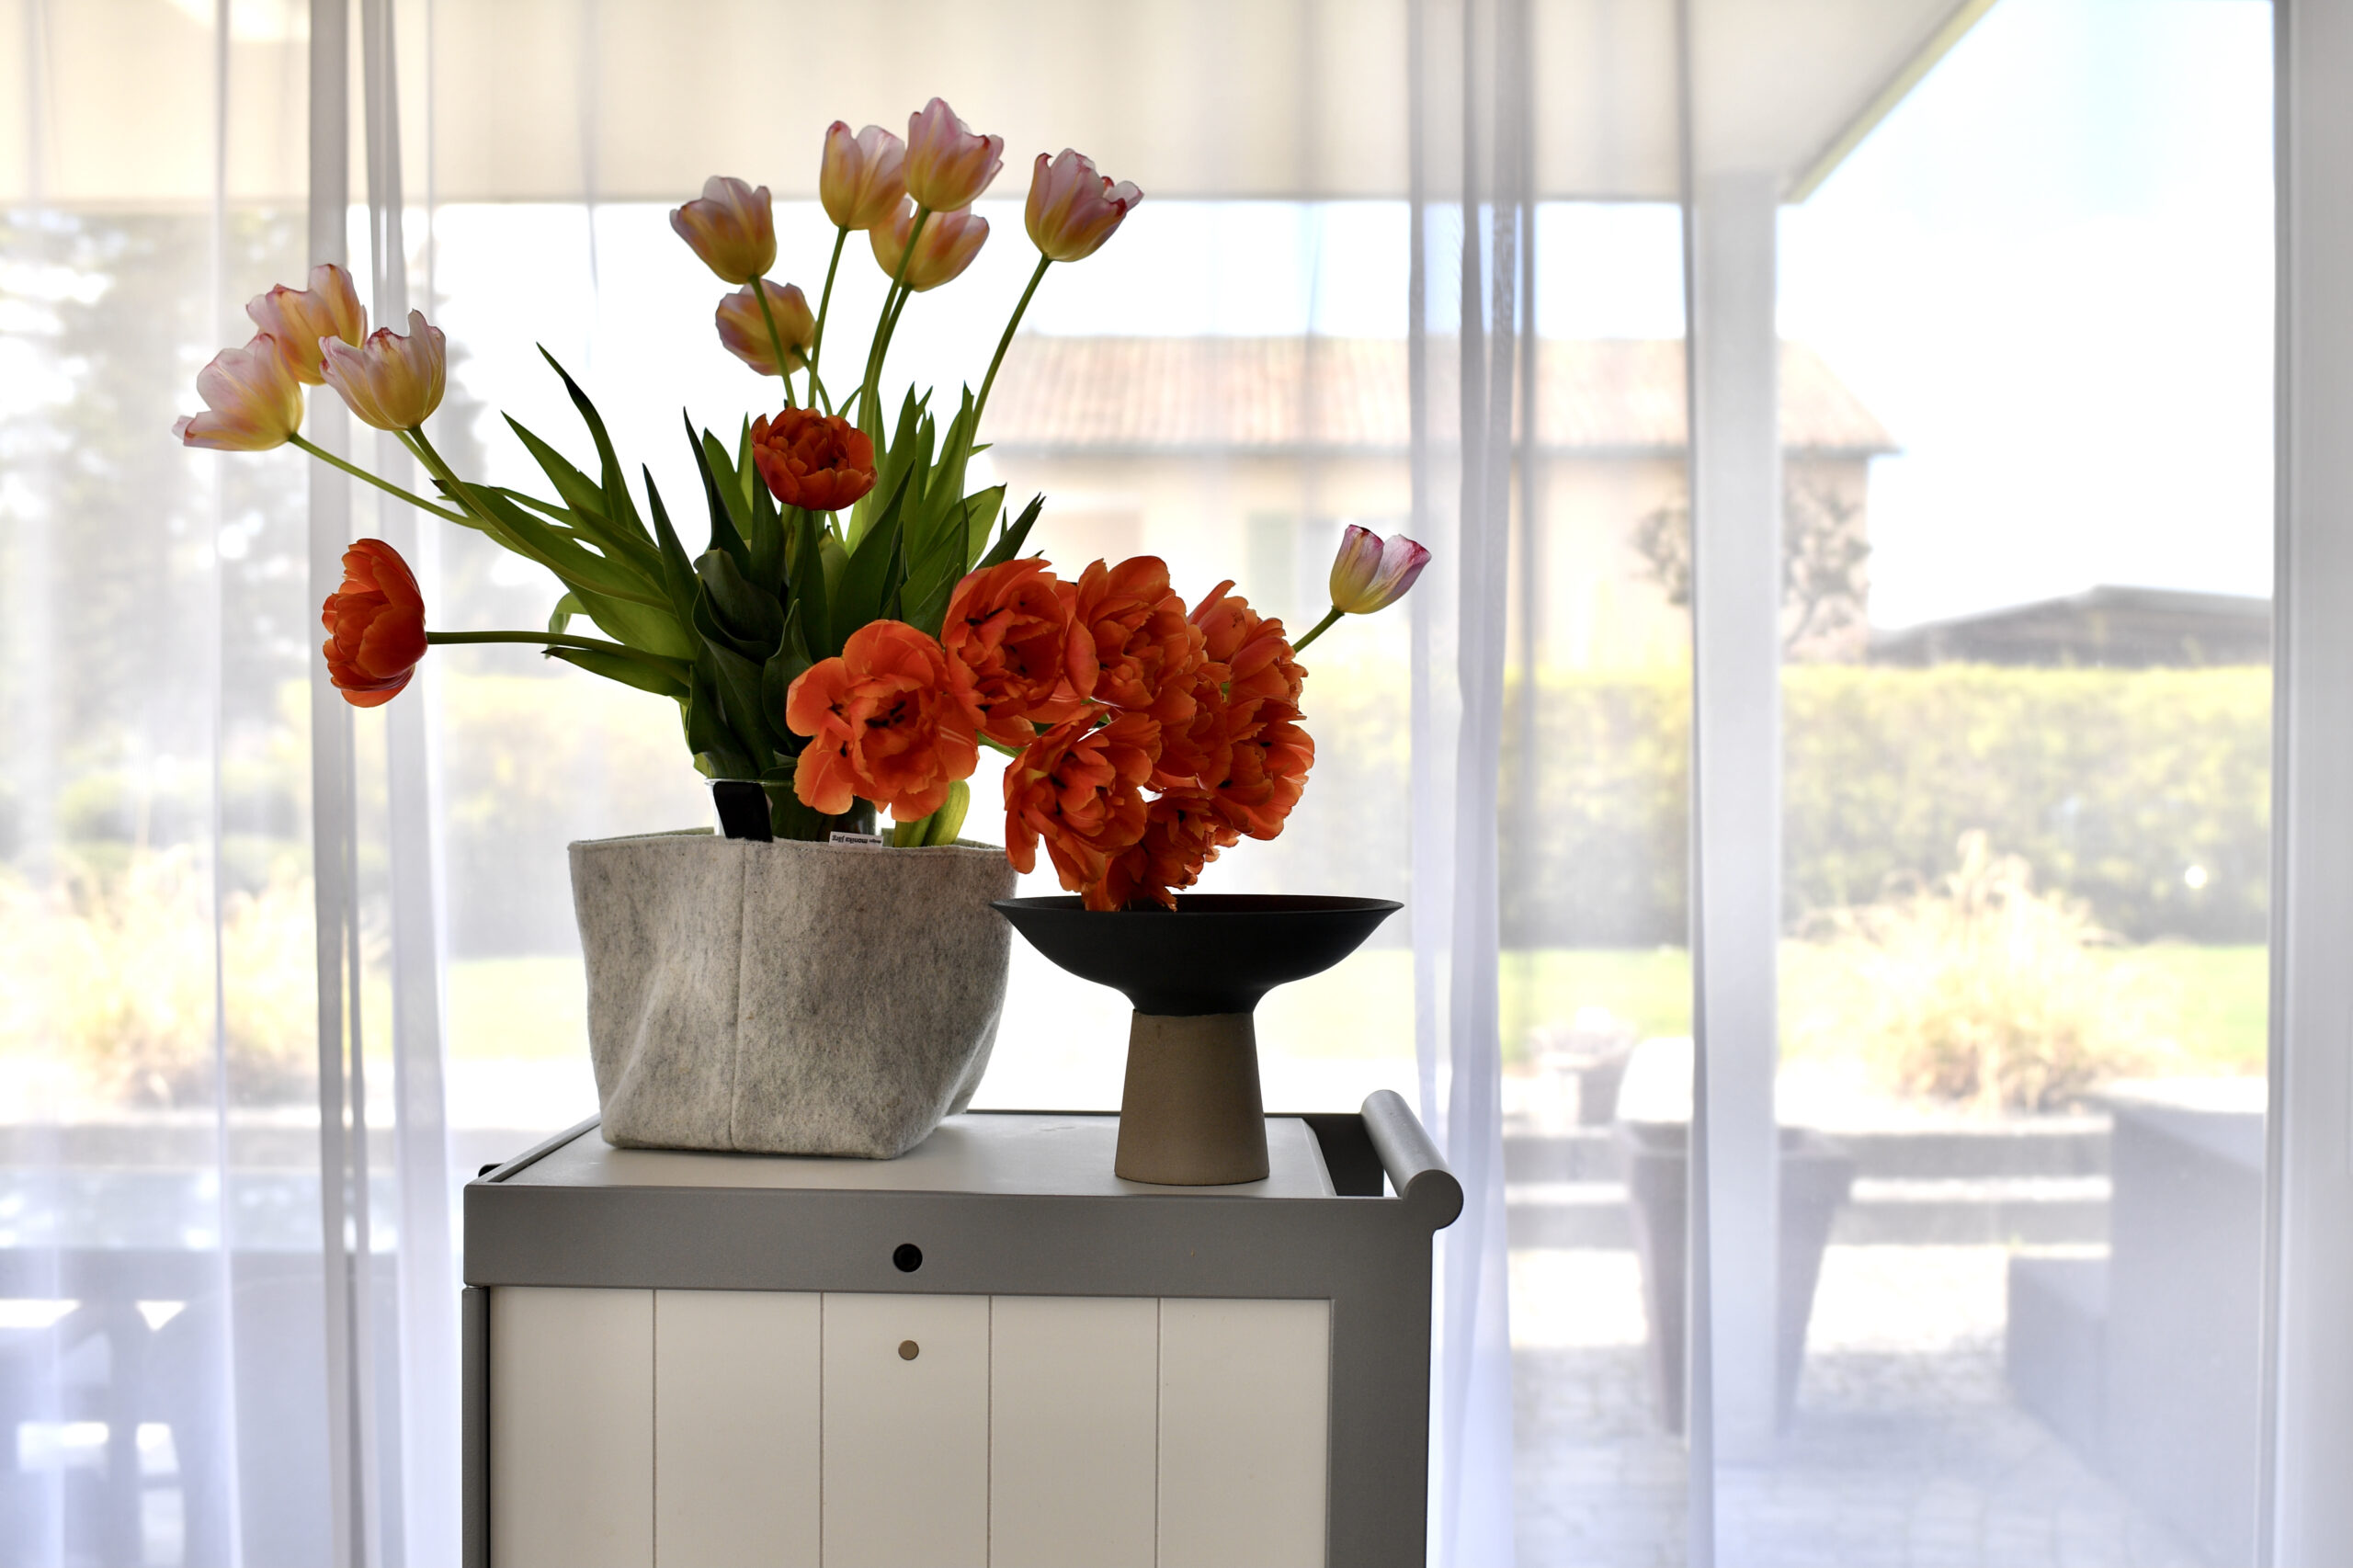 7 Fun Ideas to Make Your Home Lift Your Spirits